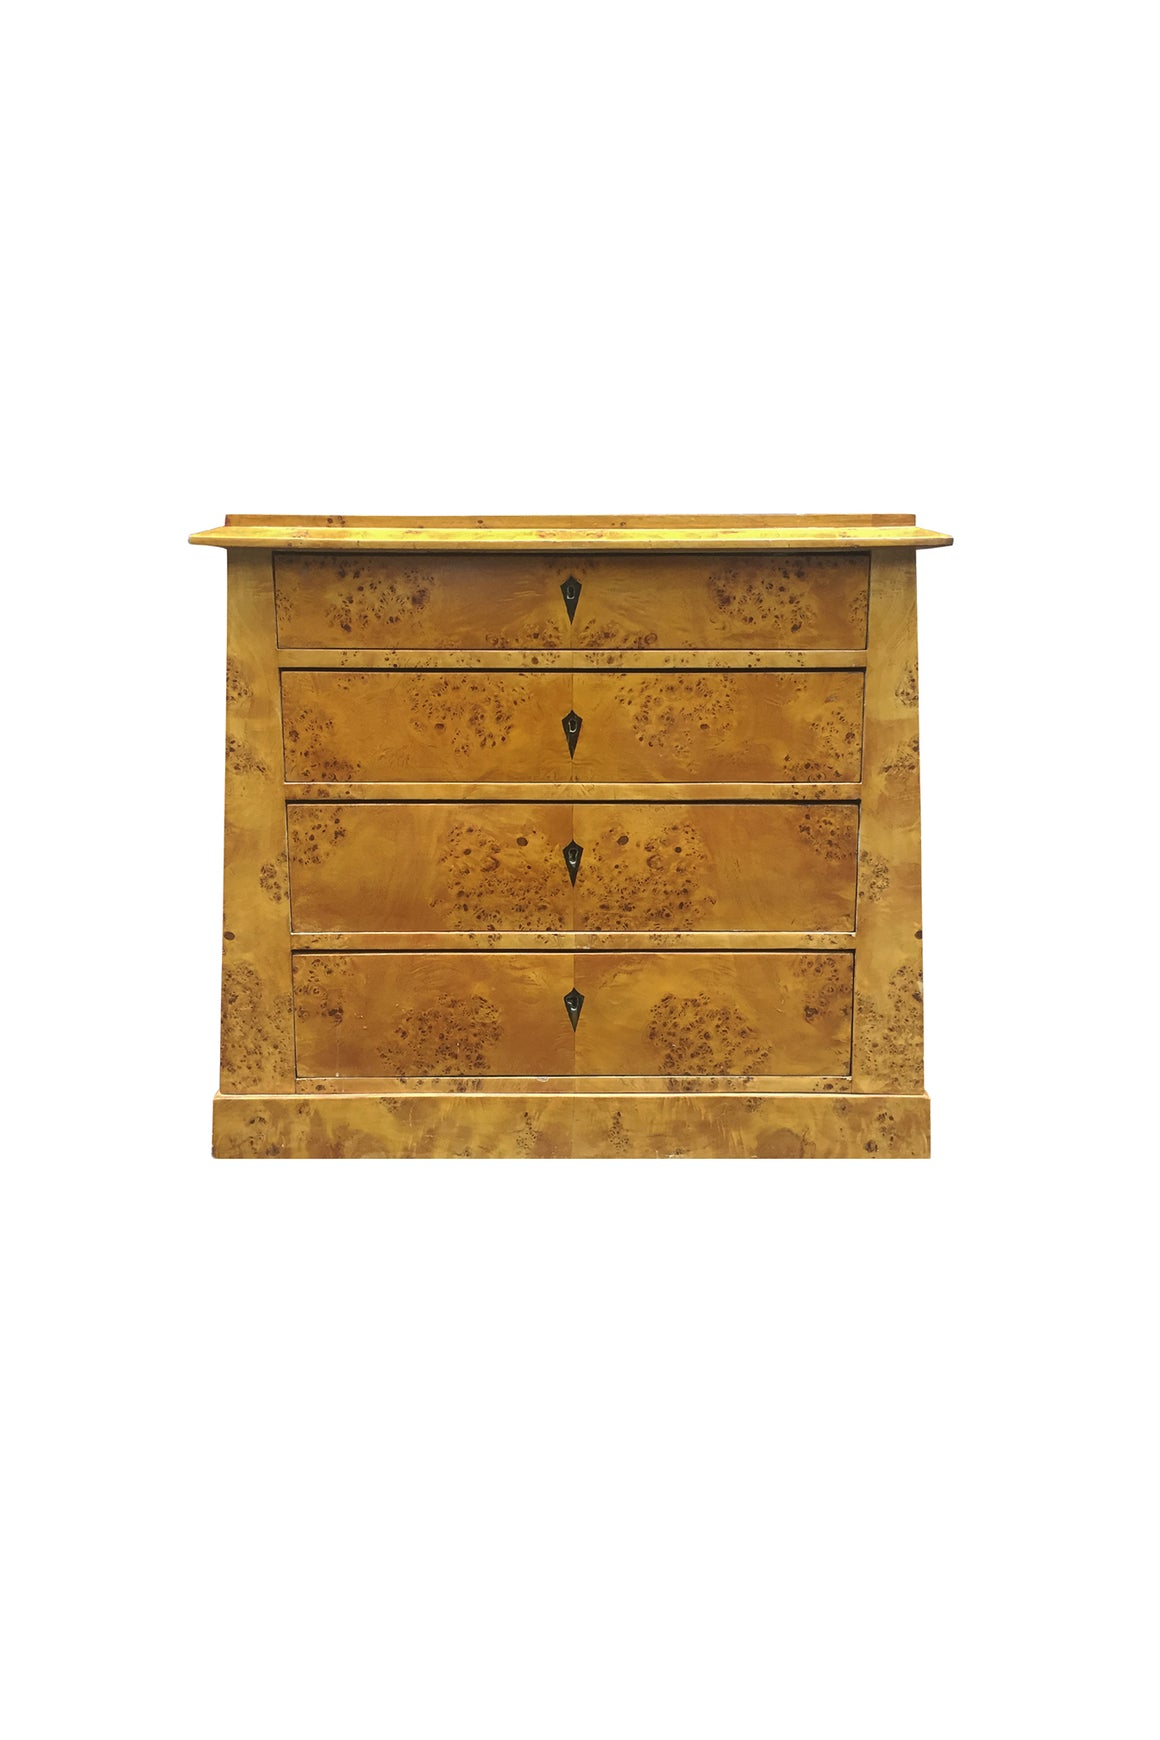 19th Century Biedermeier Burl Chest of Drawers or Commode